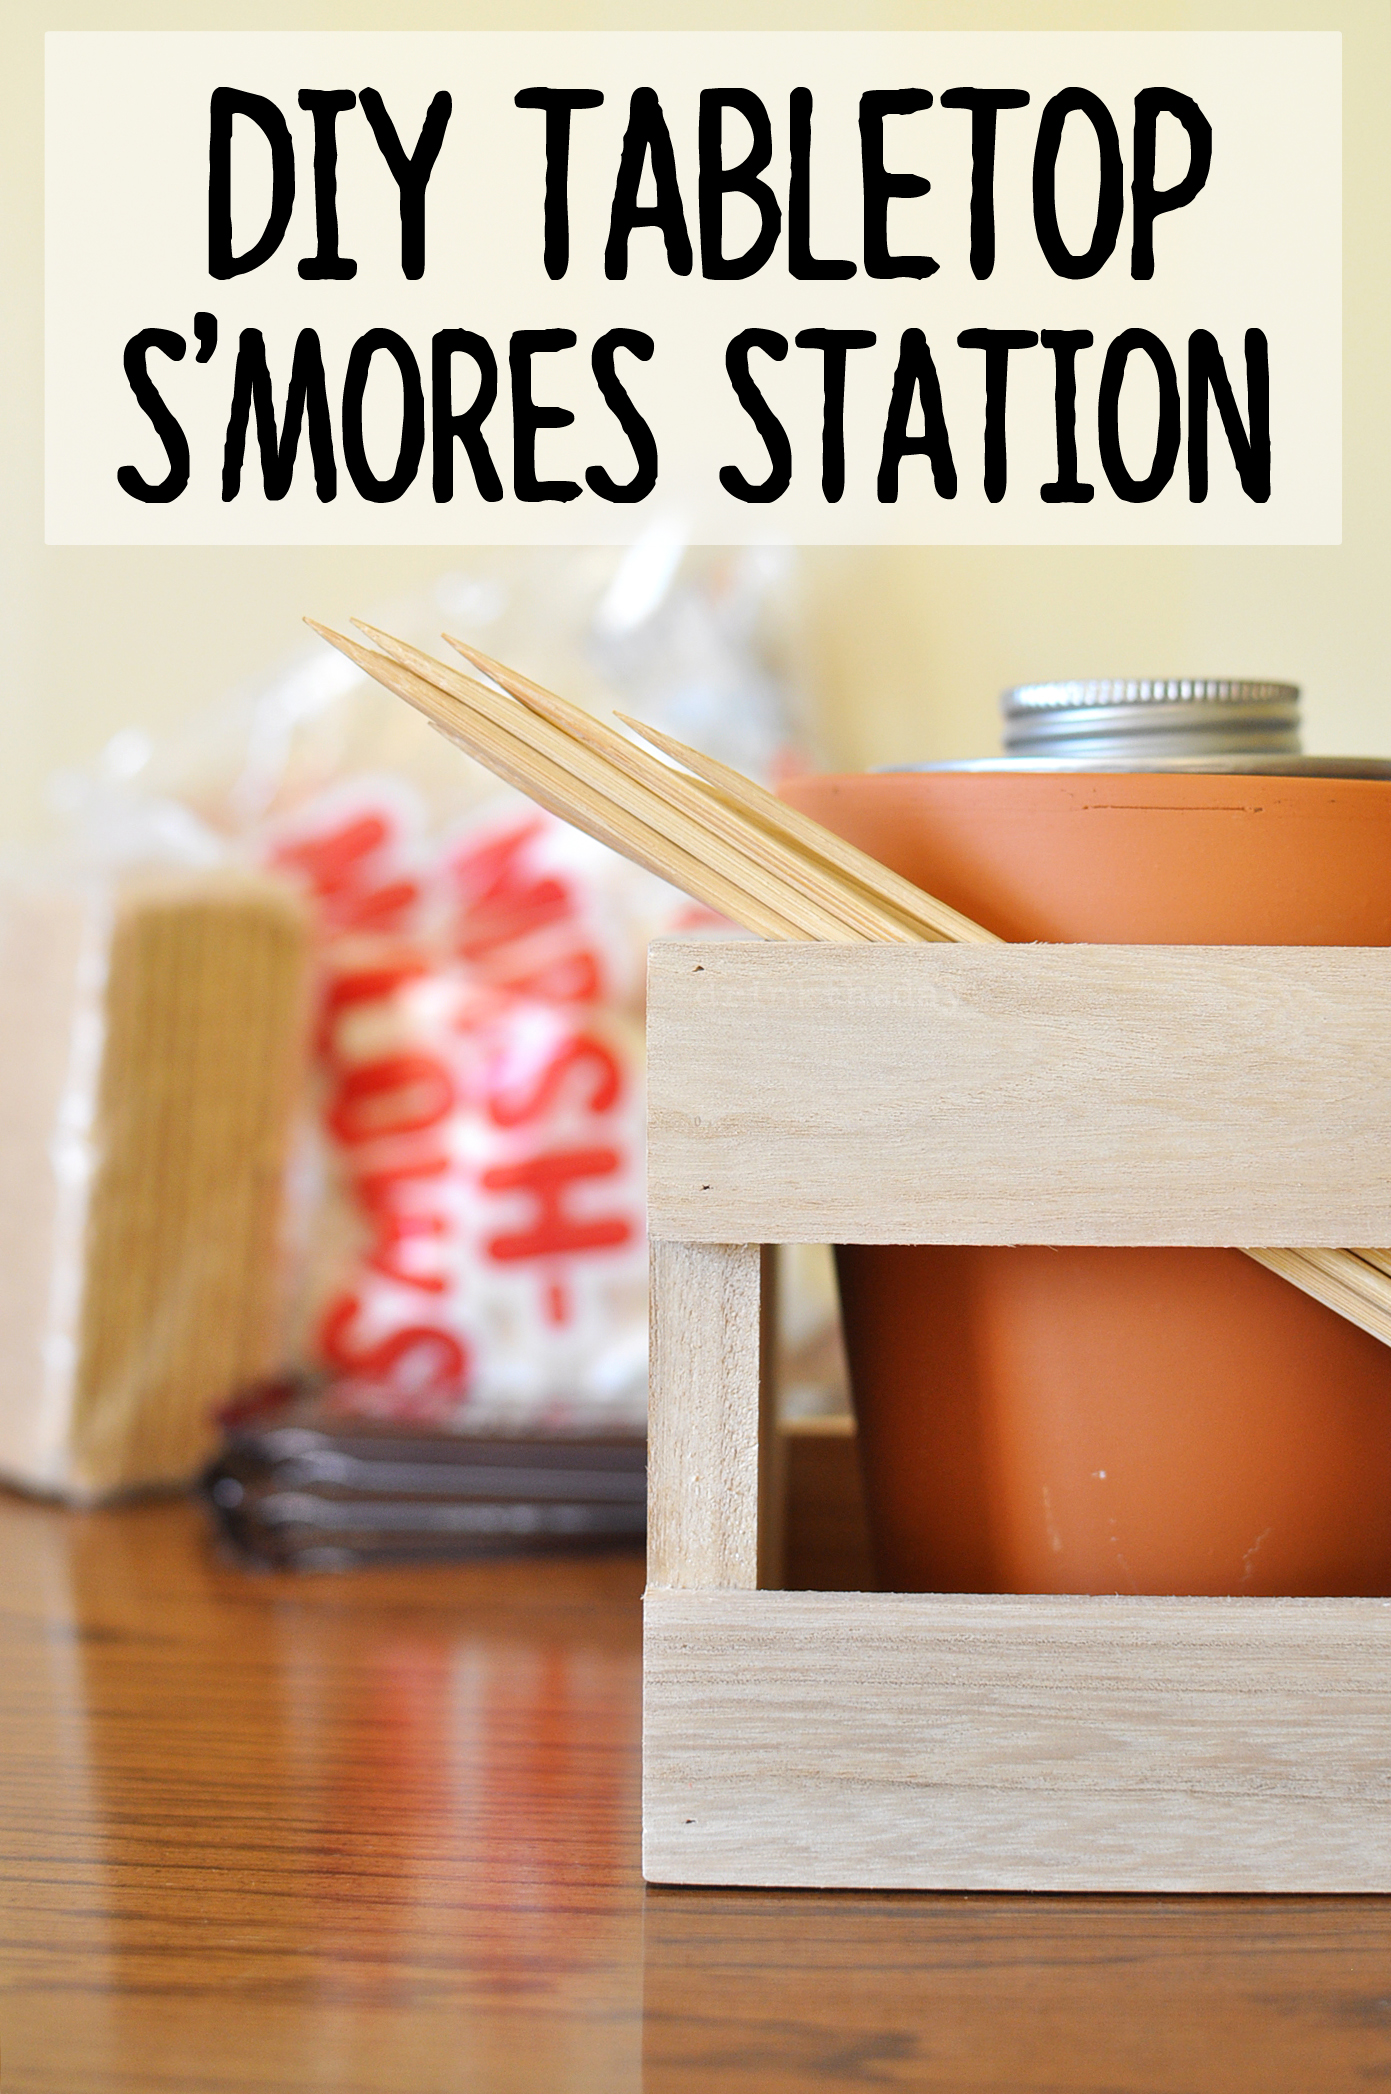 DIY Tabletop S'mores Station | Drink the Day